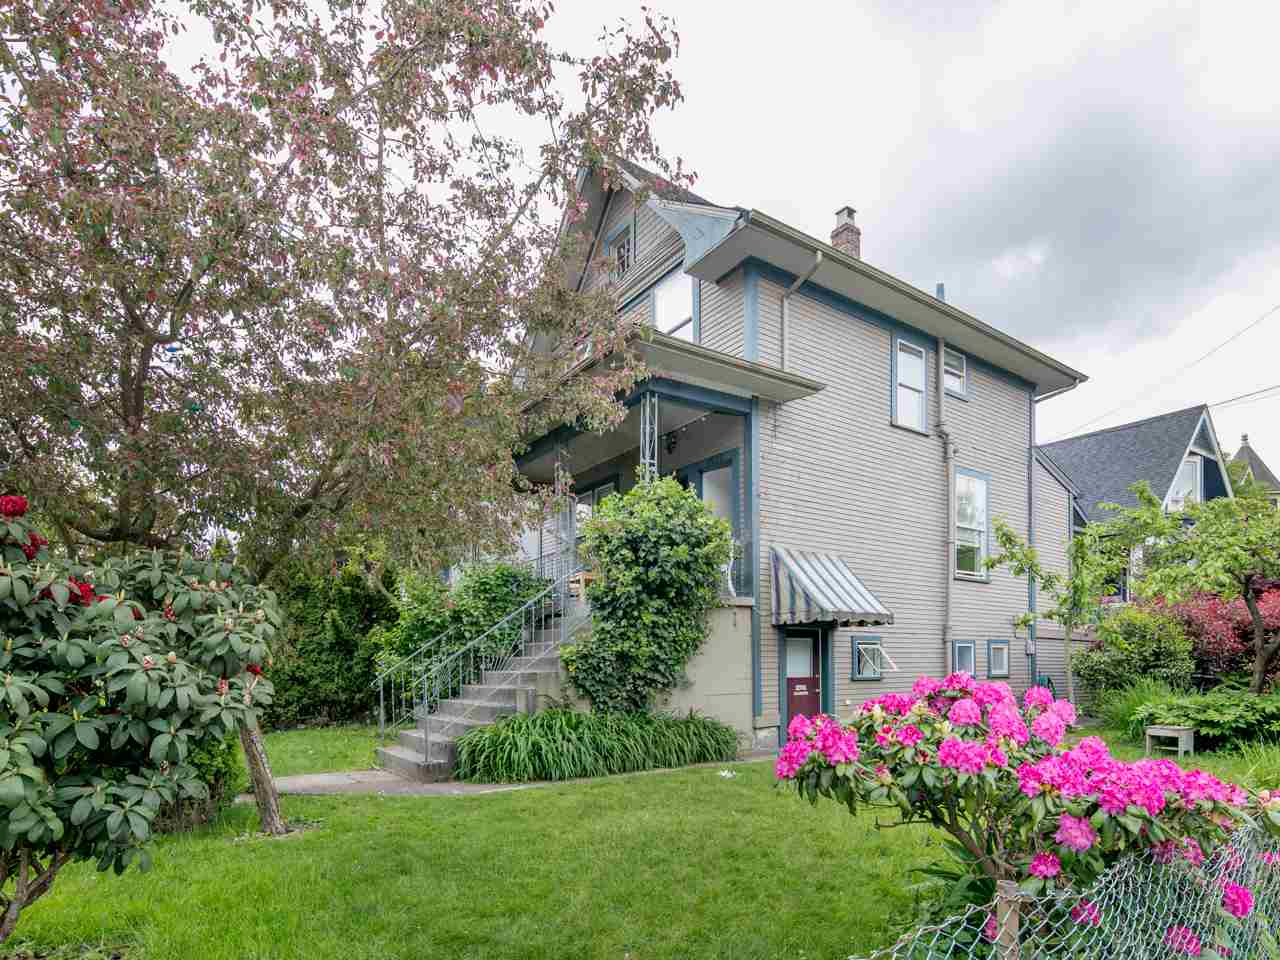 Main Photo: 1505 SALSBURY Drive in Vancouver: Grandview VE House for sale (Vancouver East)  : MLS(r) # R2179781